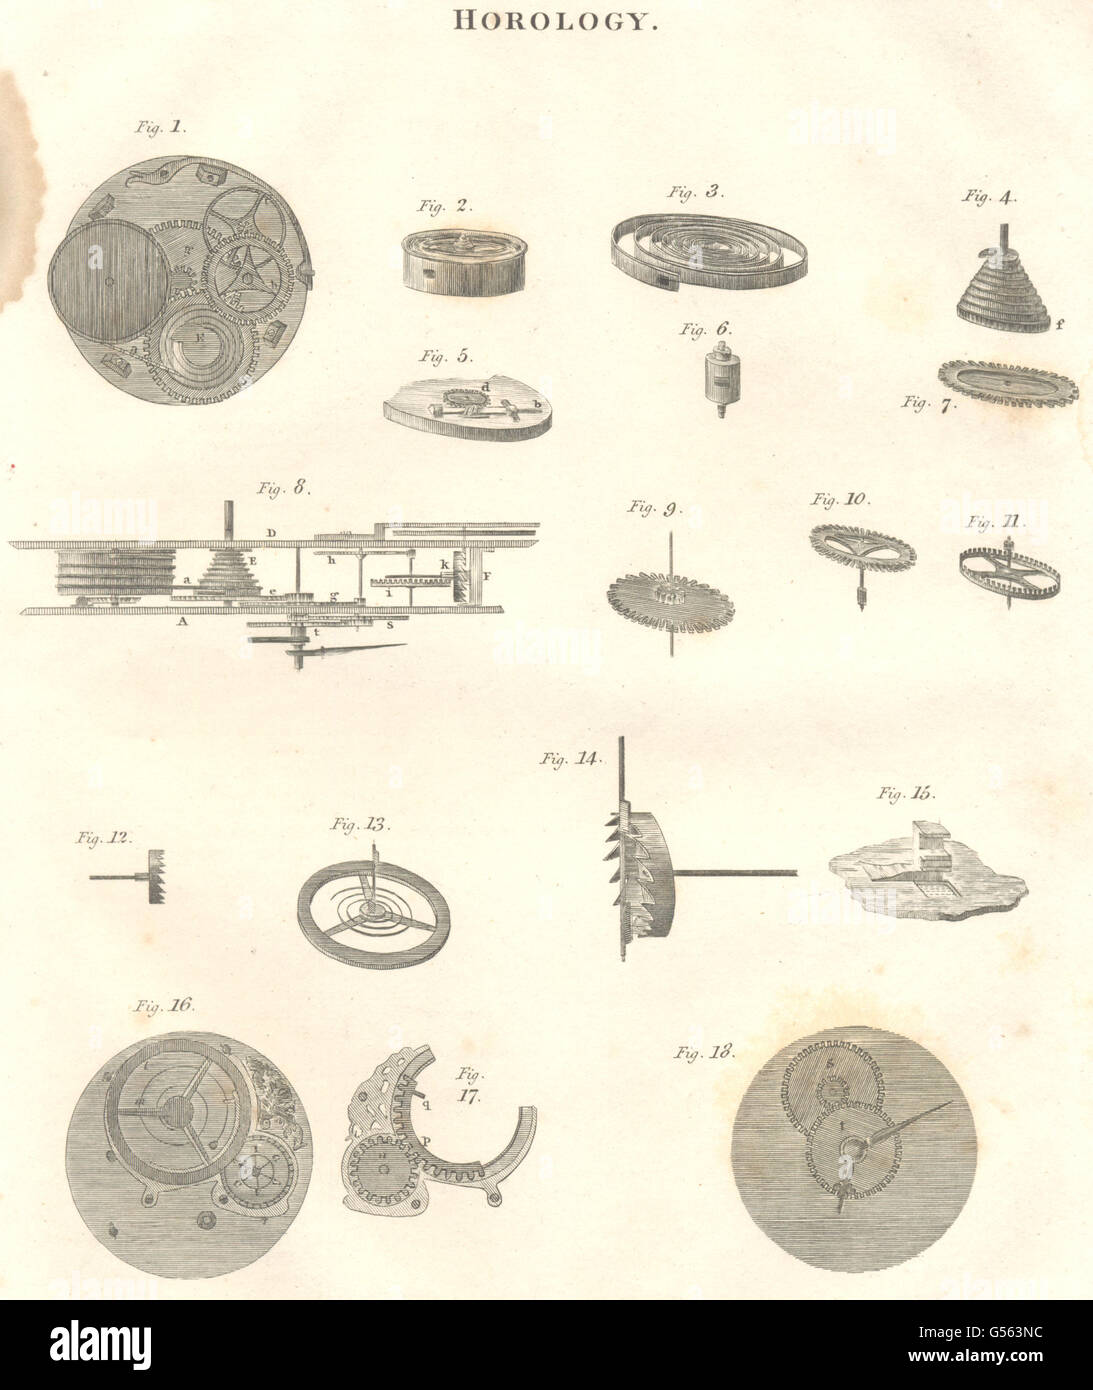 ENGINEERING: Horology. (Oxford Encyclopaedia), antique print 1830 - Stock Image